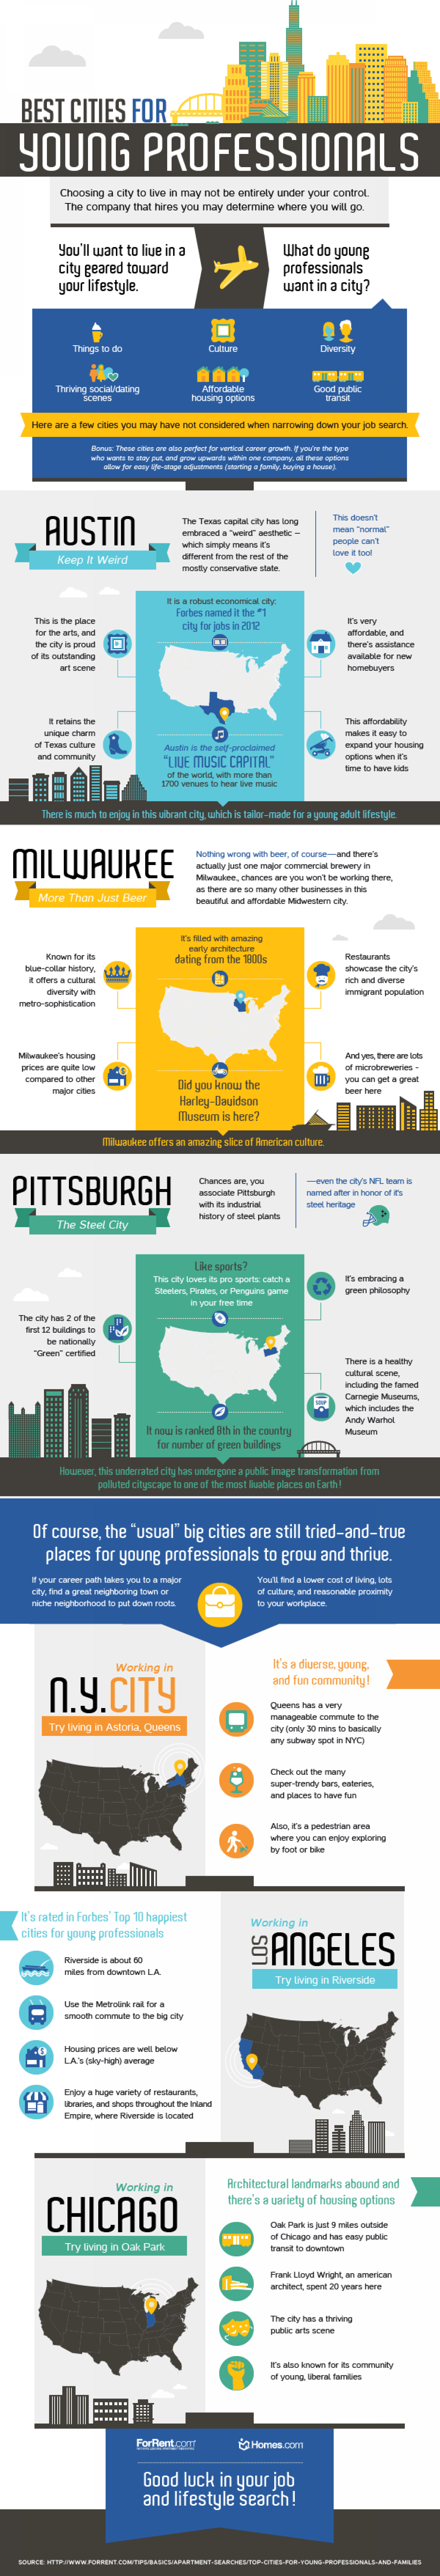 Top Cities for Young Professionals Infographic